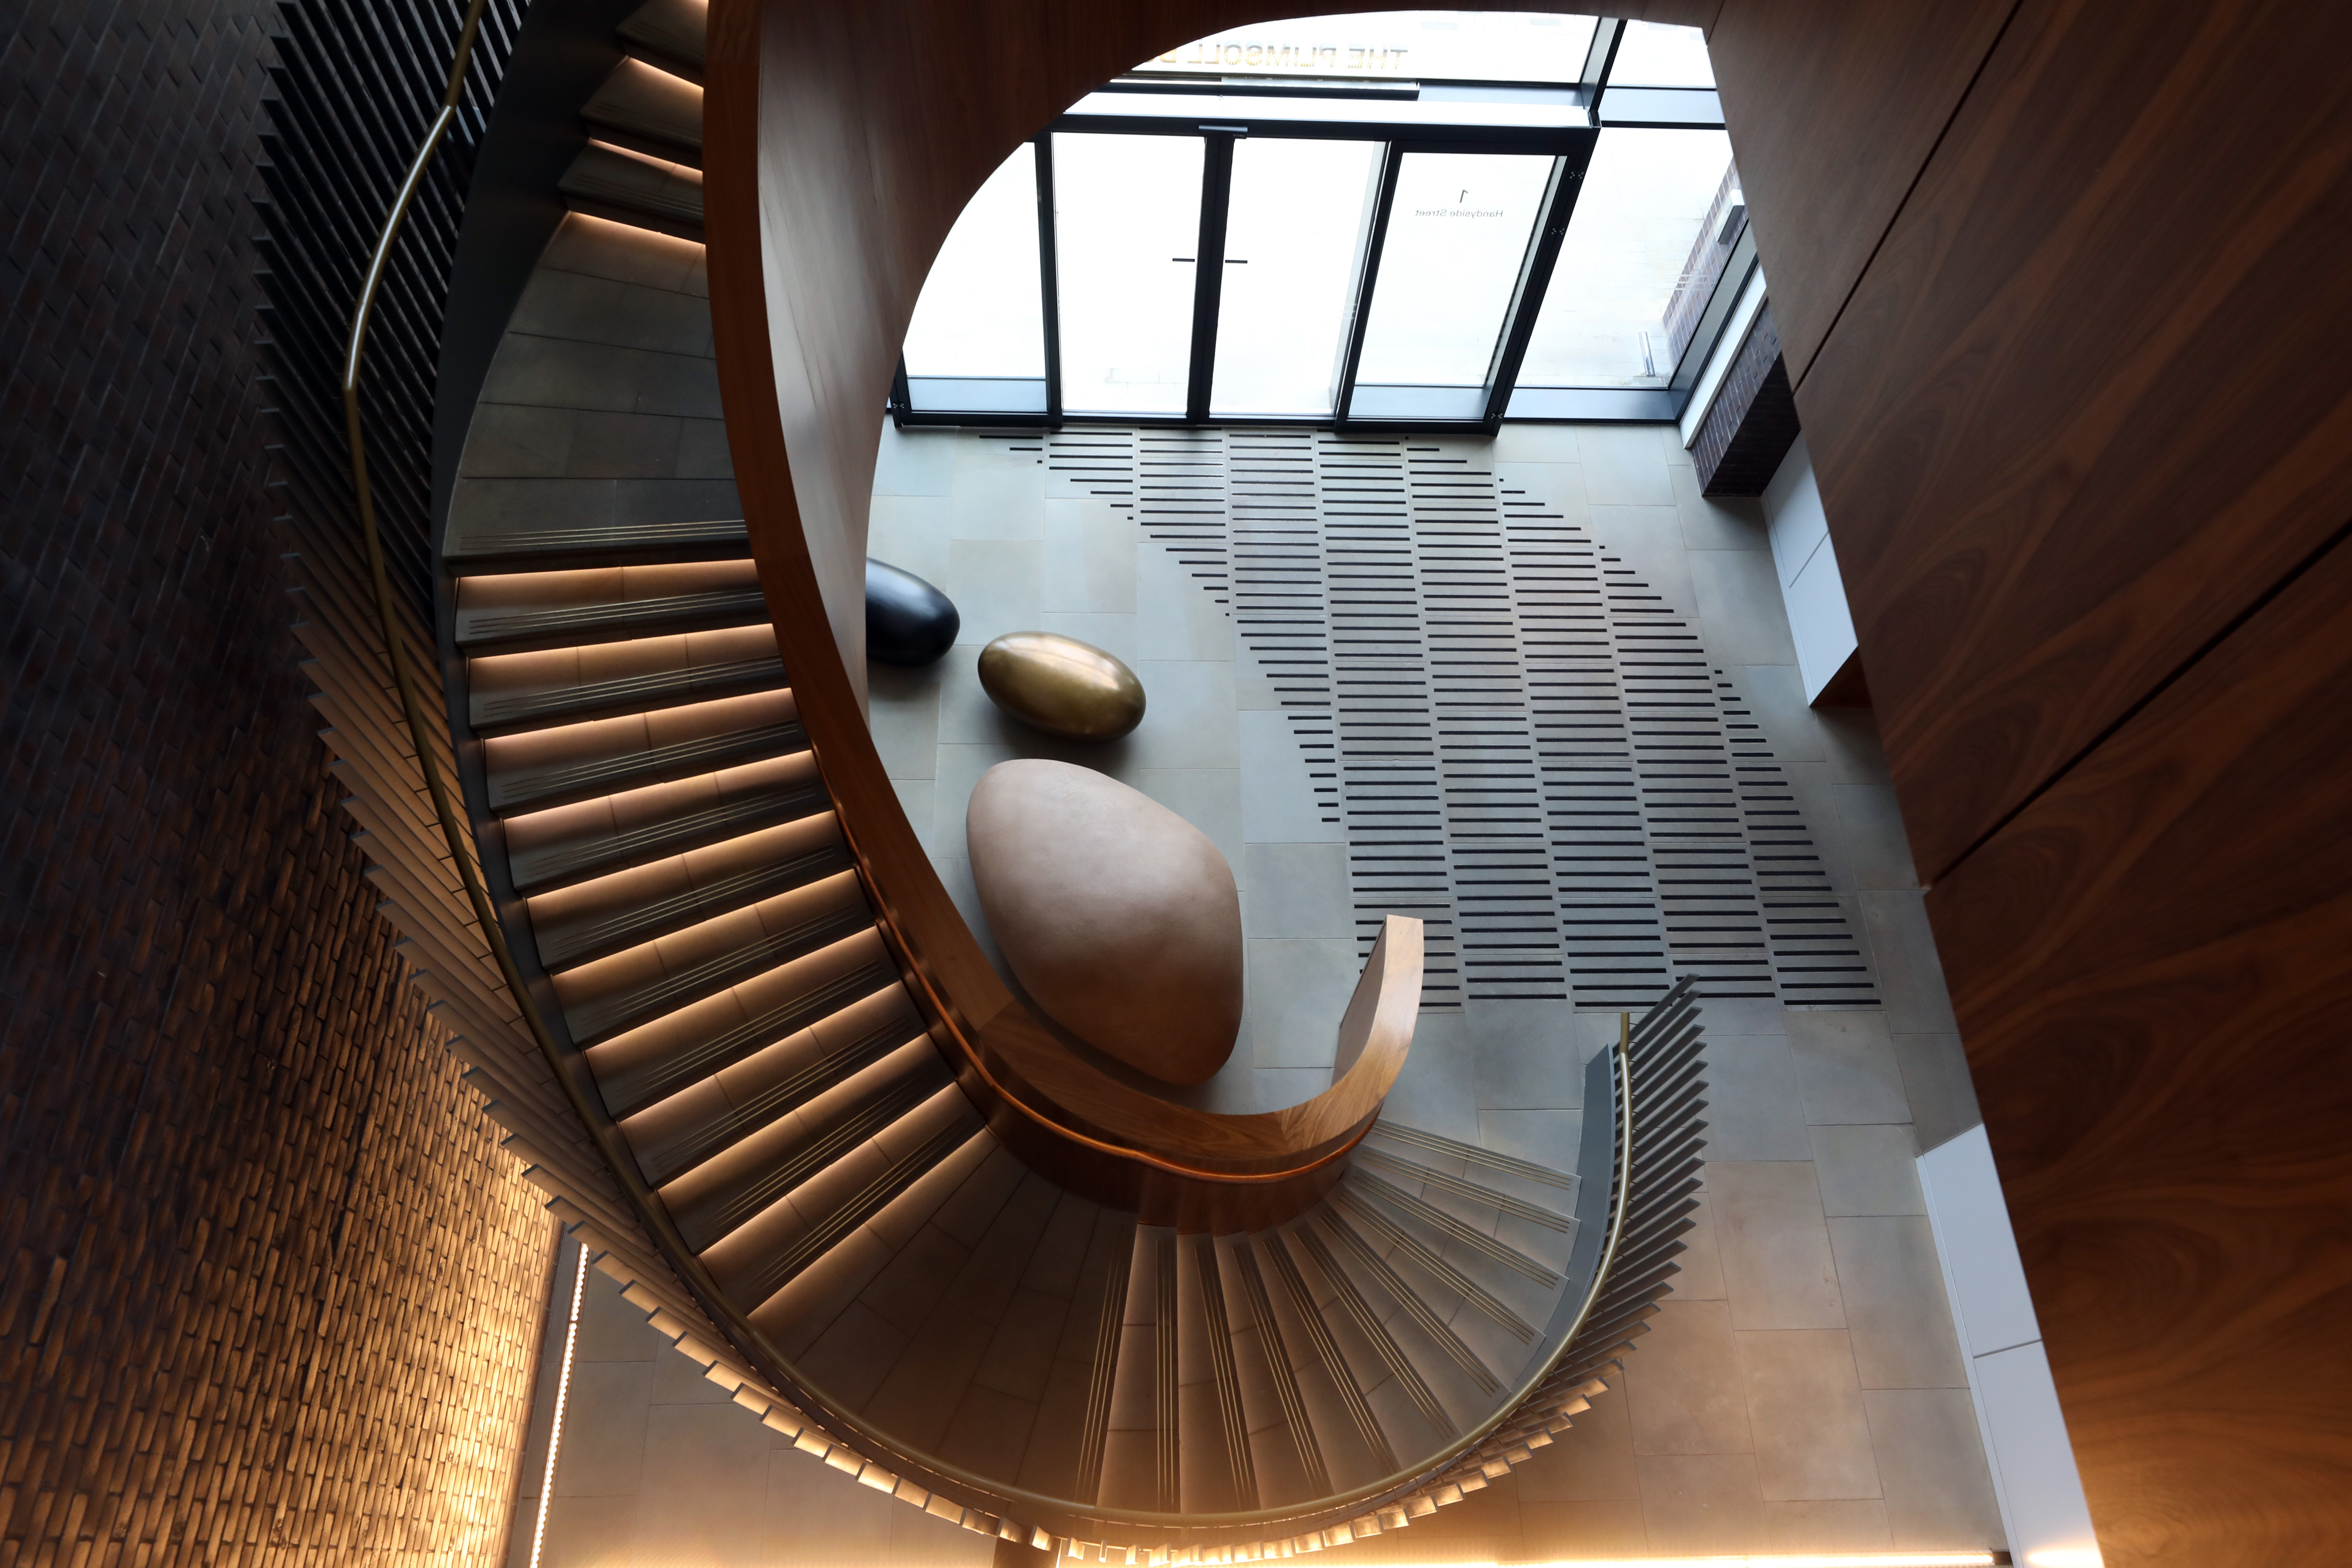 Spiral staircase, Plimsoll Building